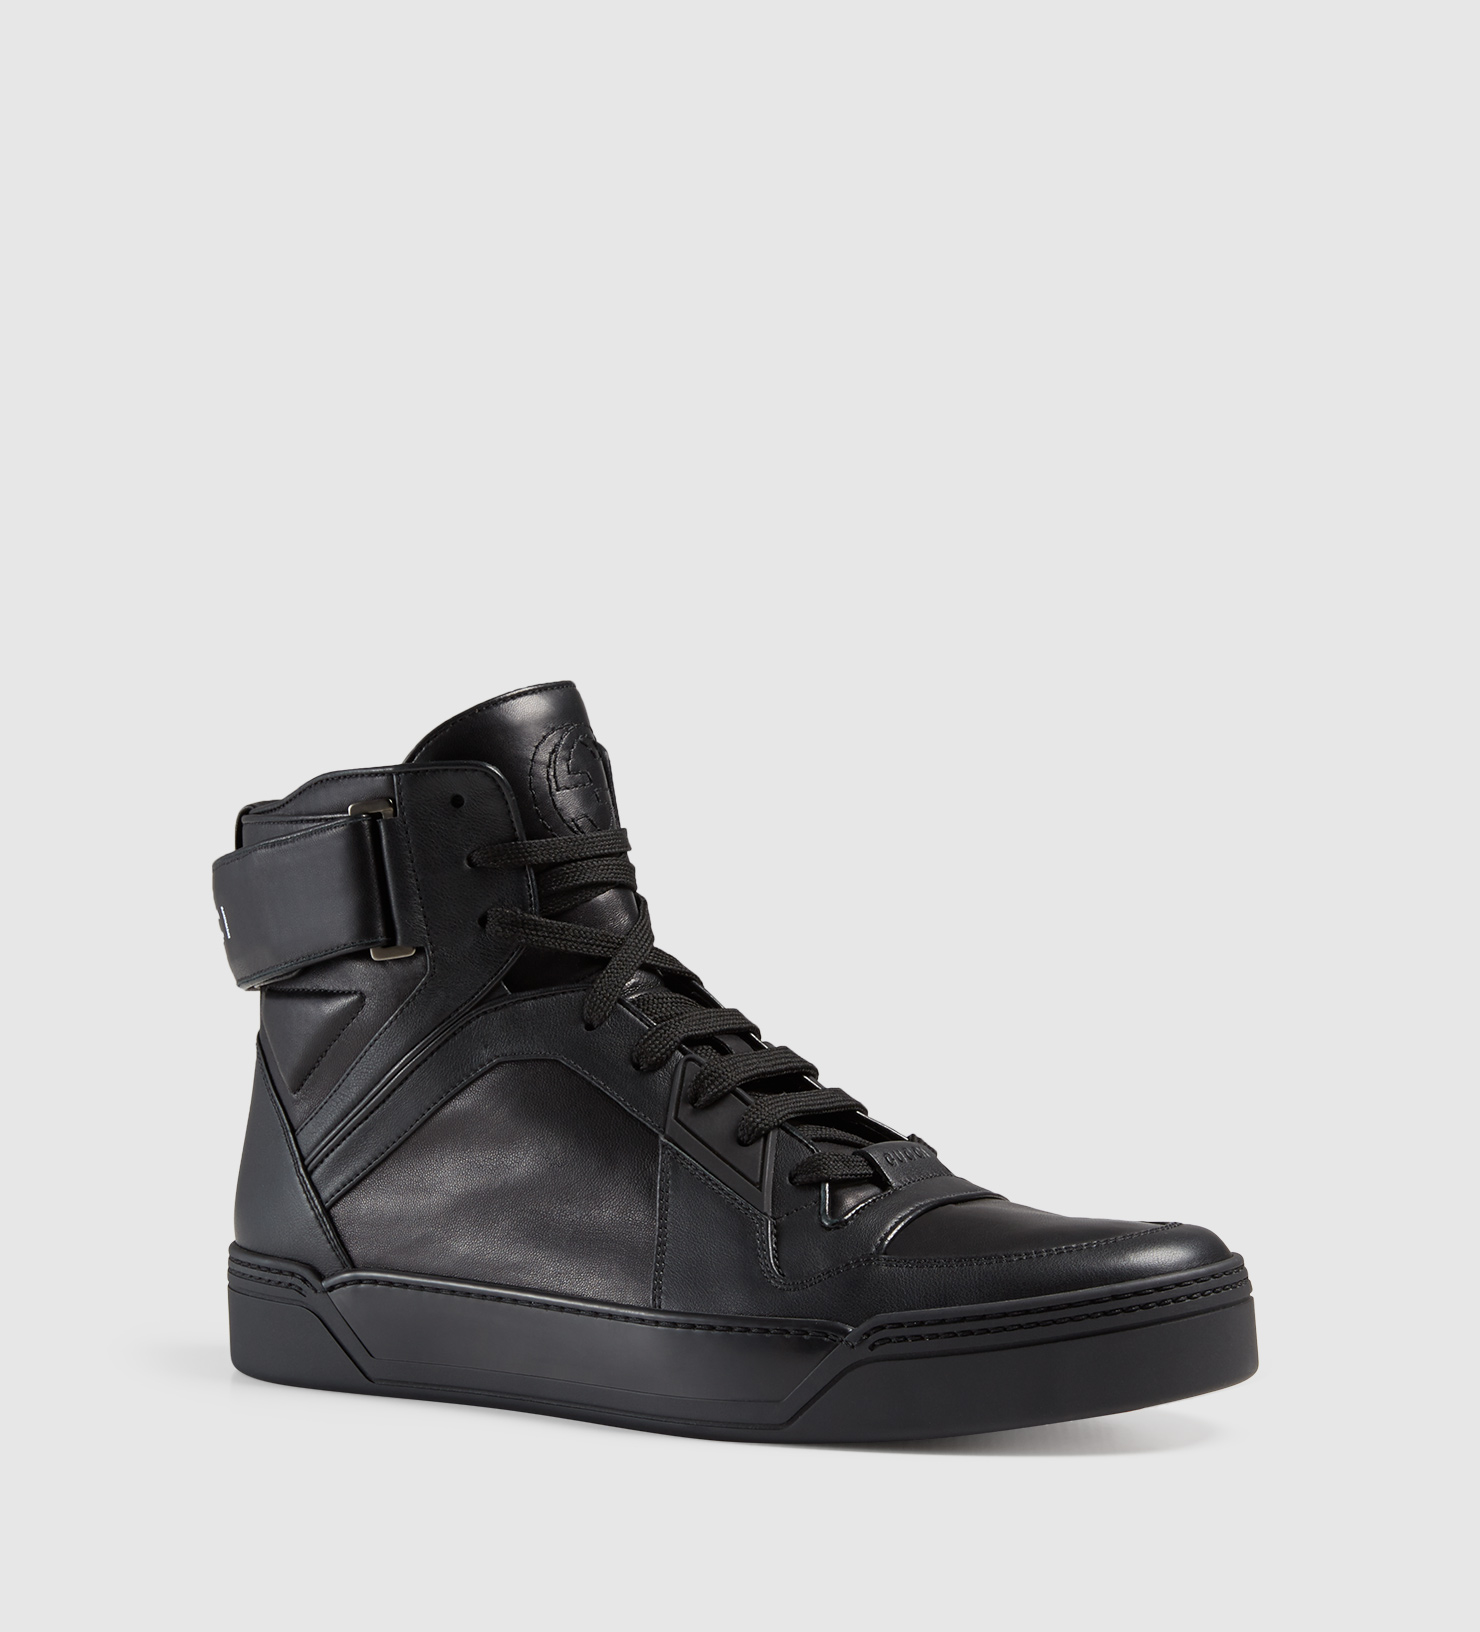 gucci leather high top sneaker in black for men lyst. Black Bedroom Furniture Sets. Home Design Ideas